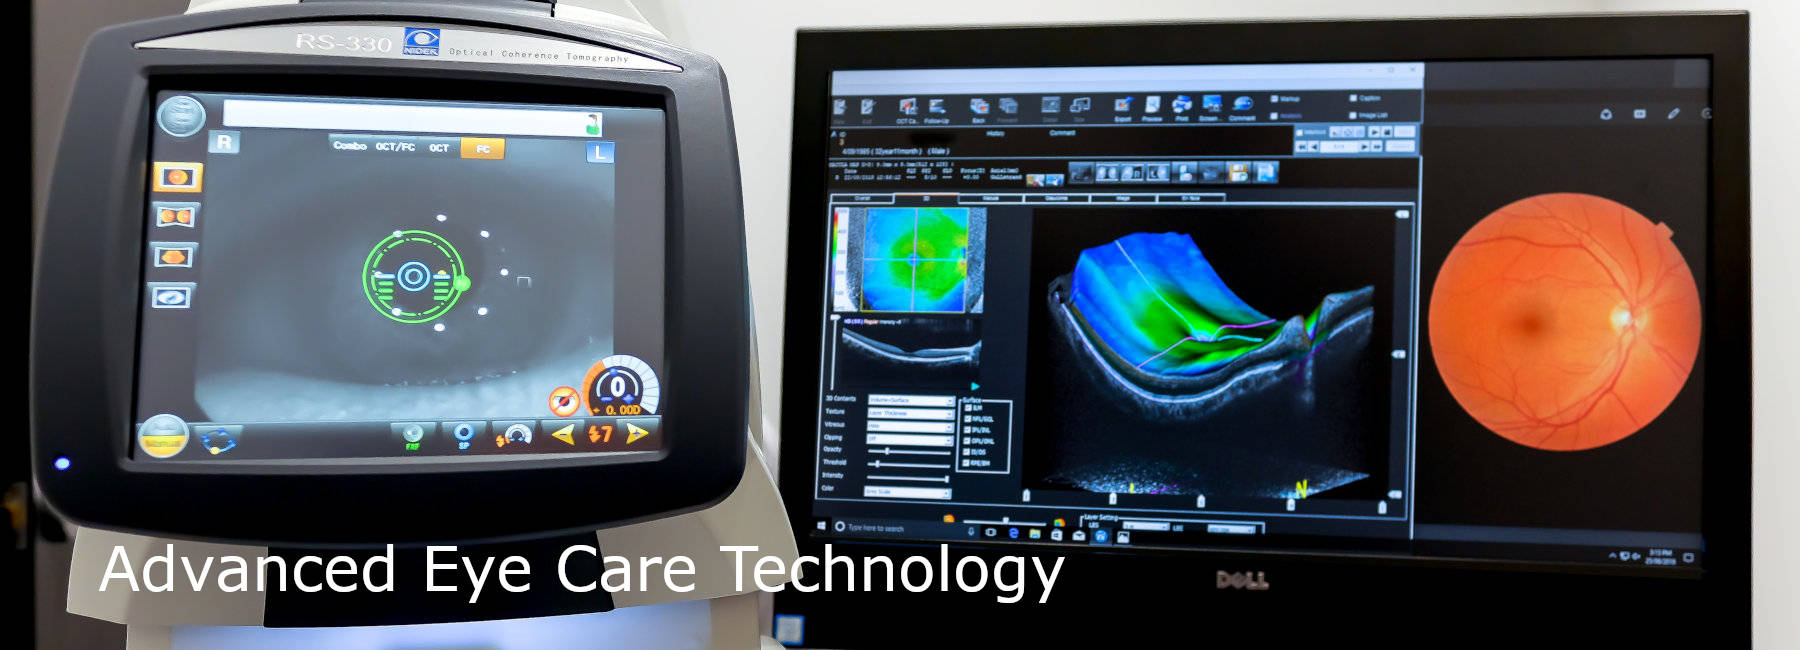 Advanced Eye Care Technology